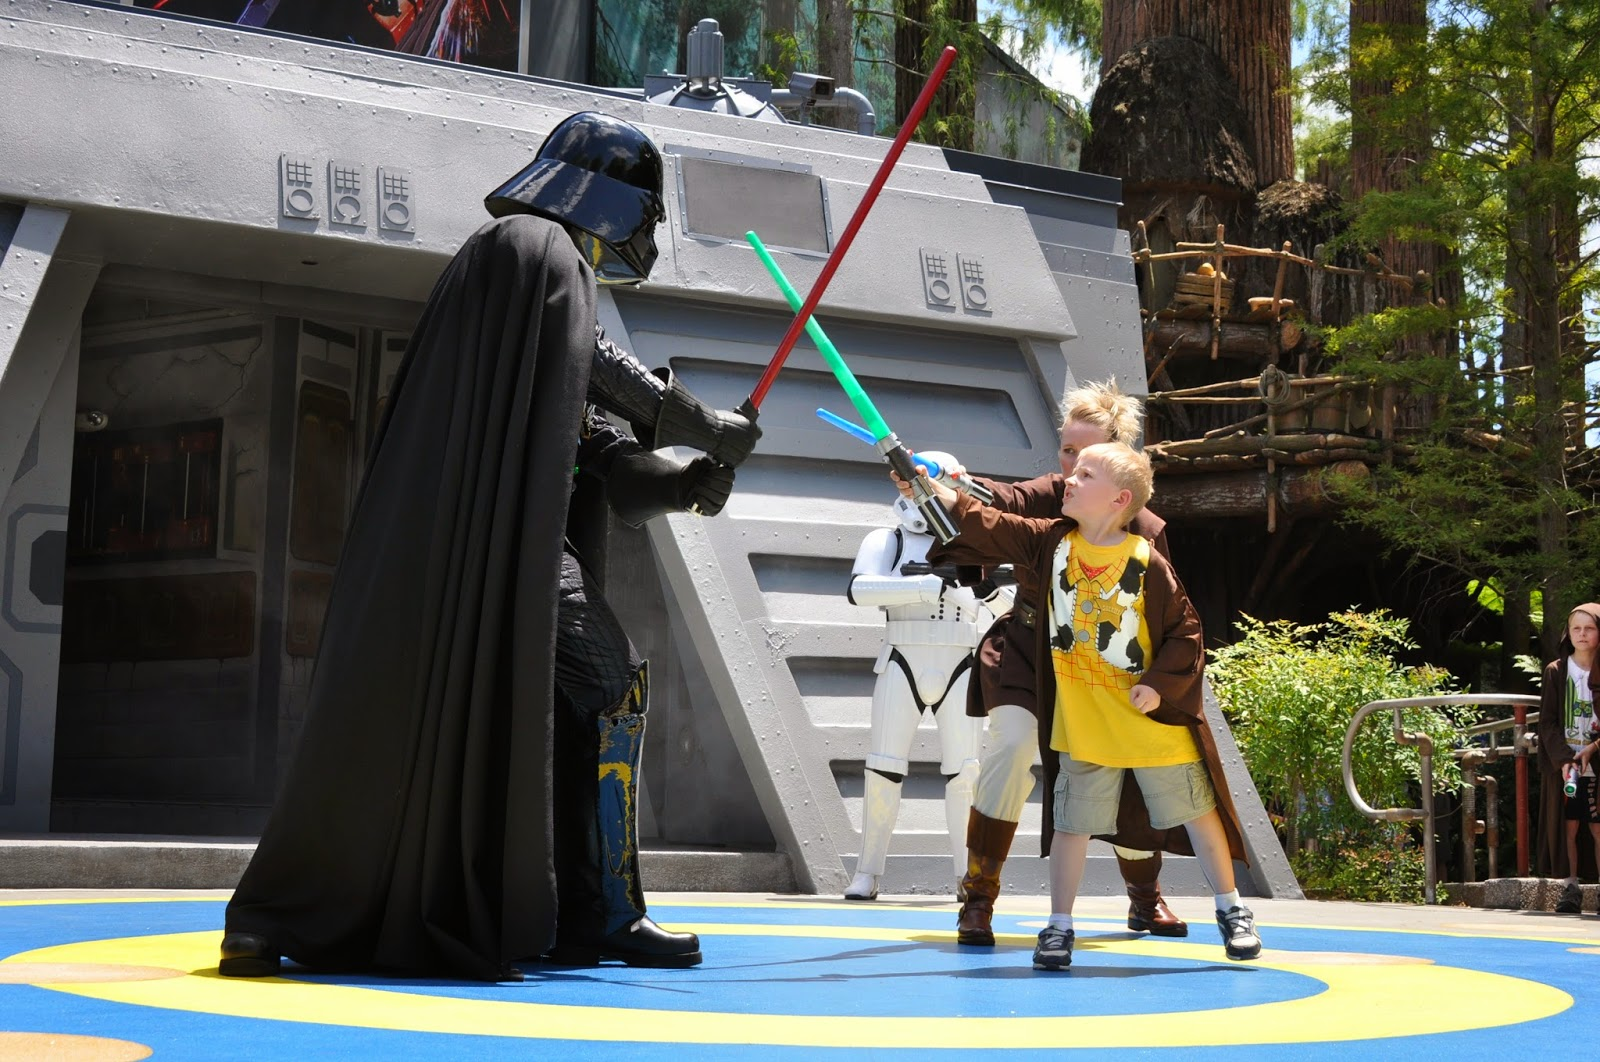 Star Wars Jedi Academy allows kids 4-12 to dual Darth Vadar himself